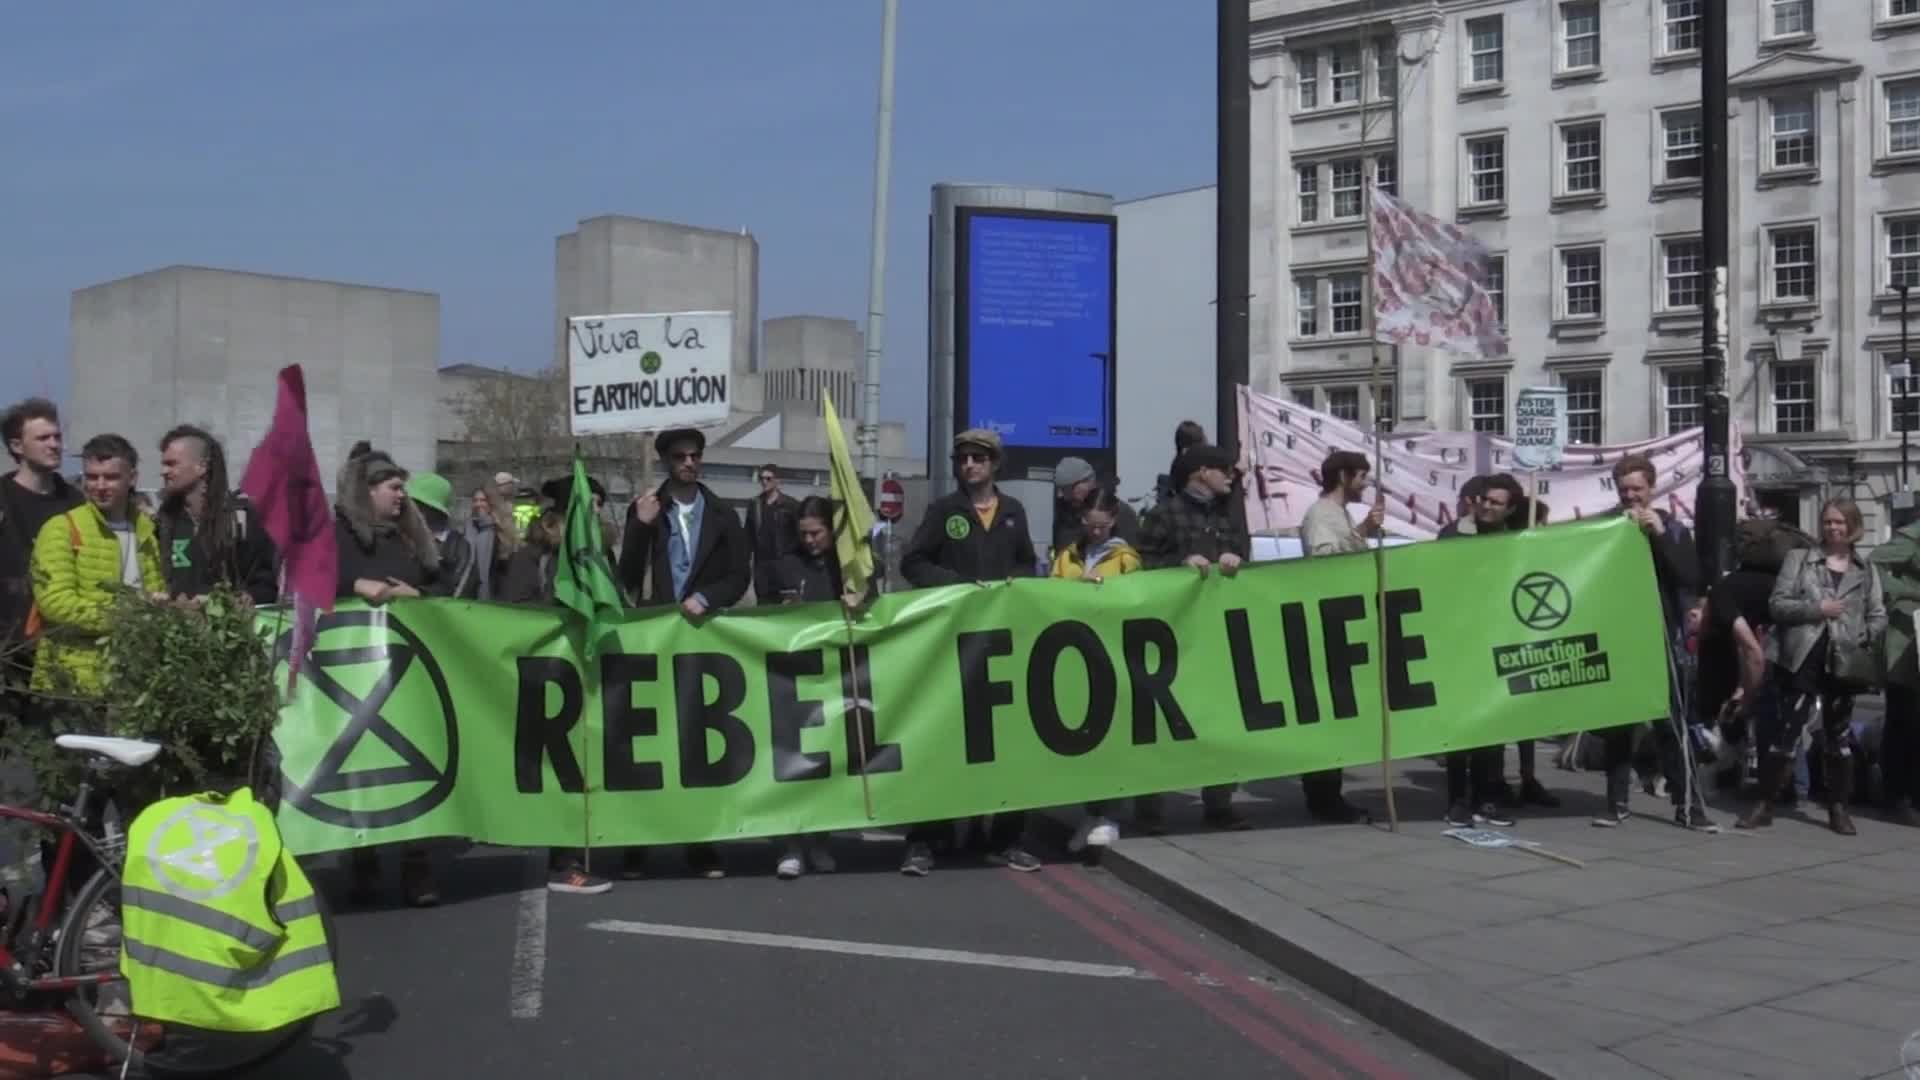 Urgent Climate Action Backed By 69% Of Brits, Says New Poll